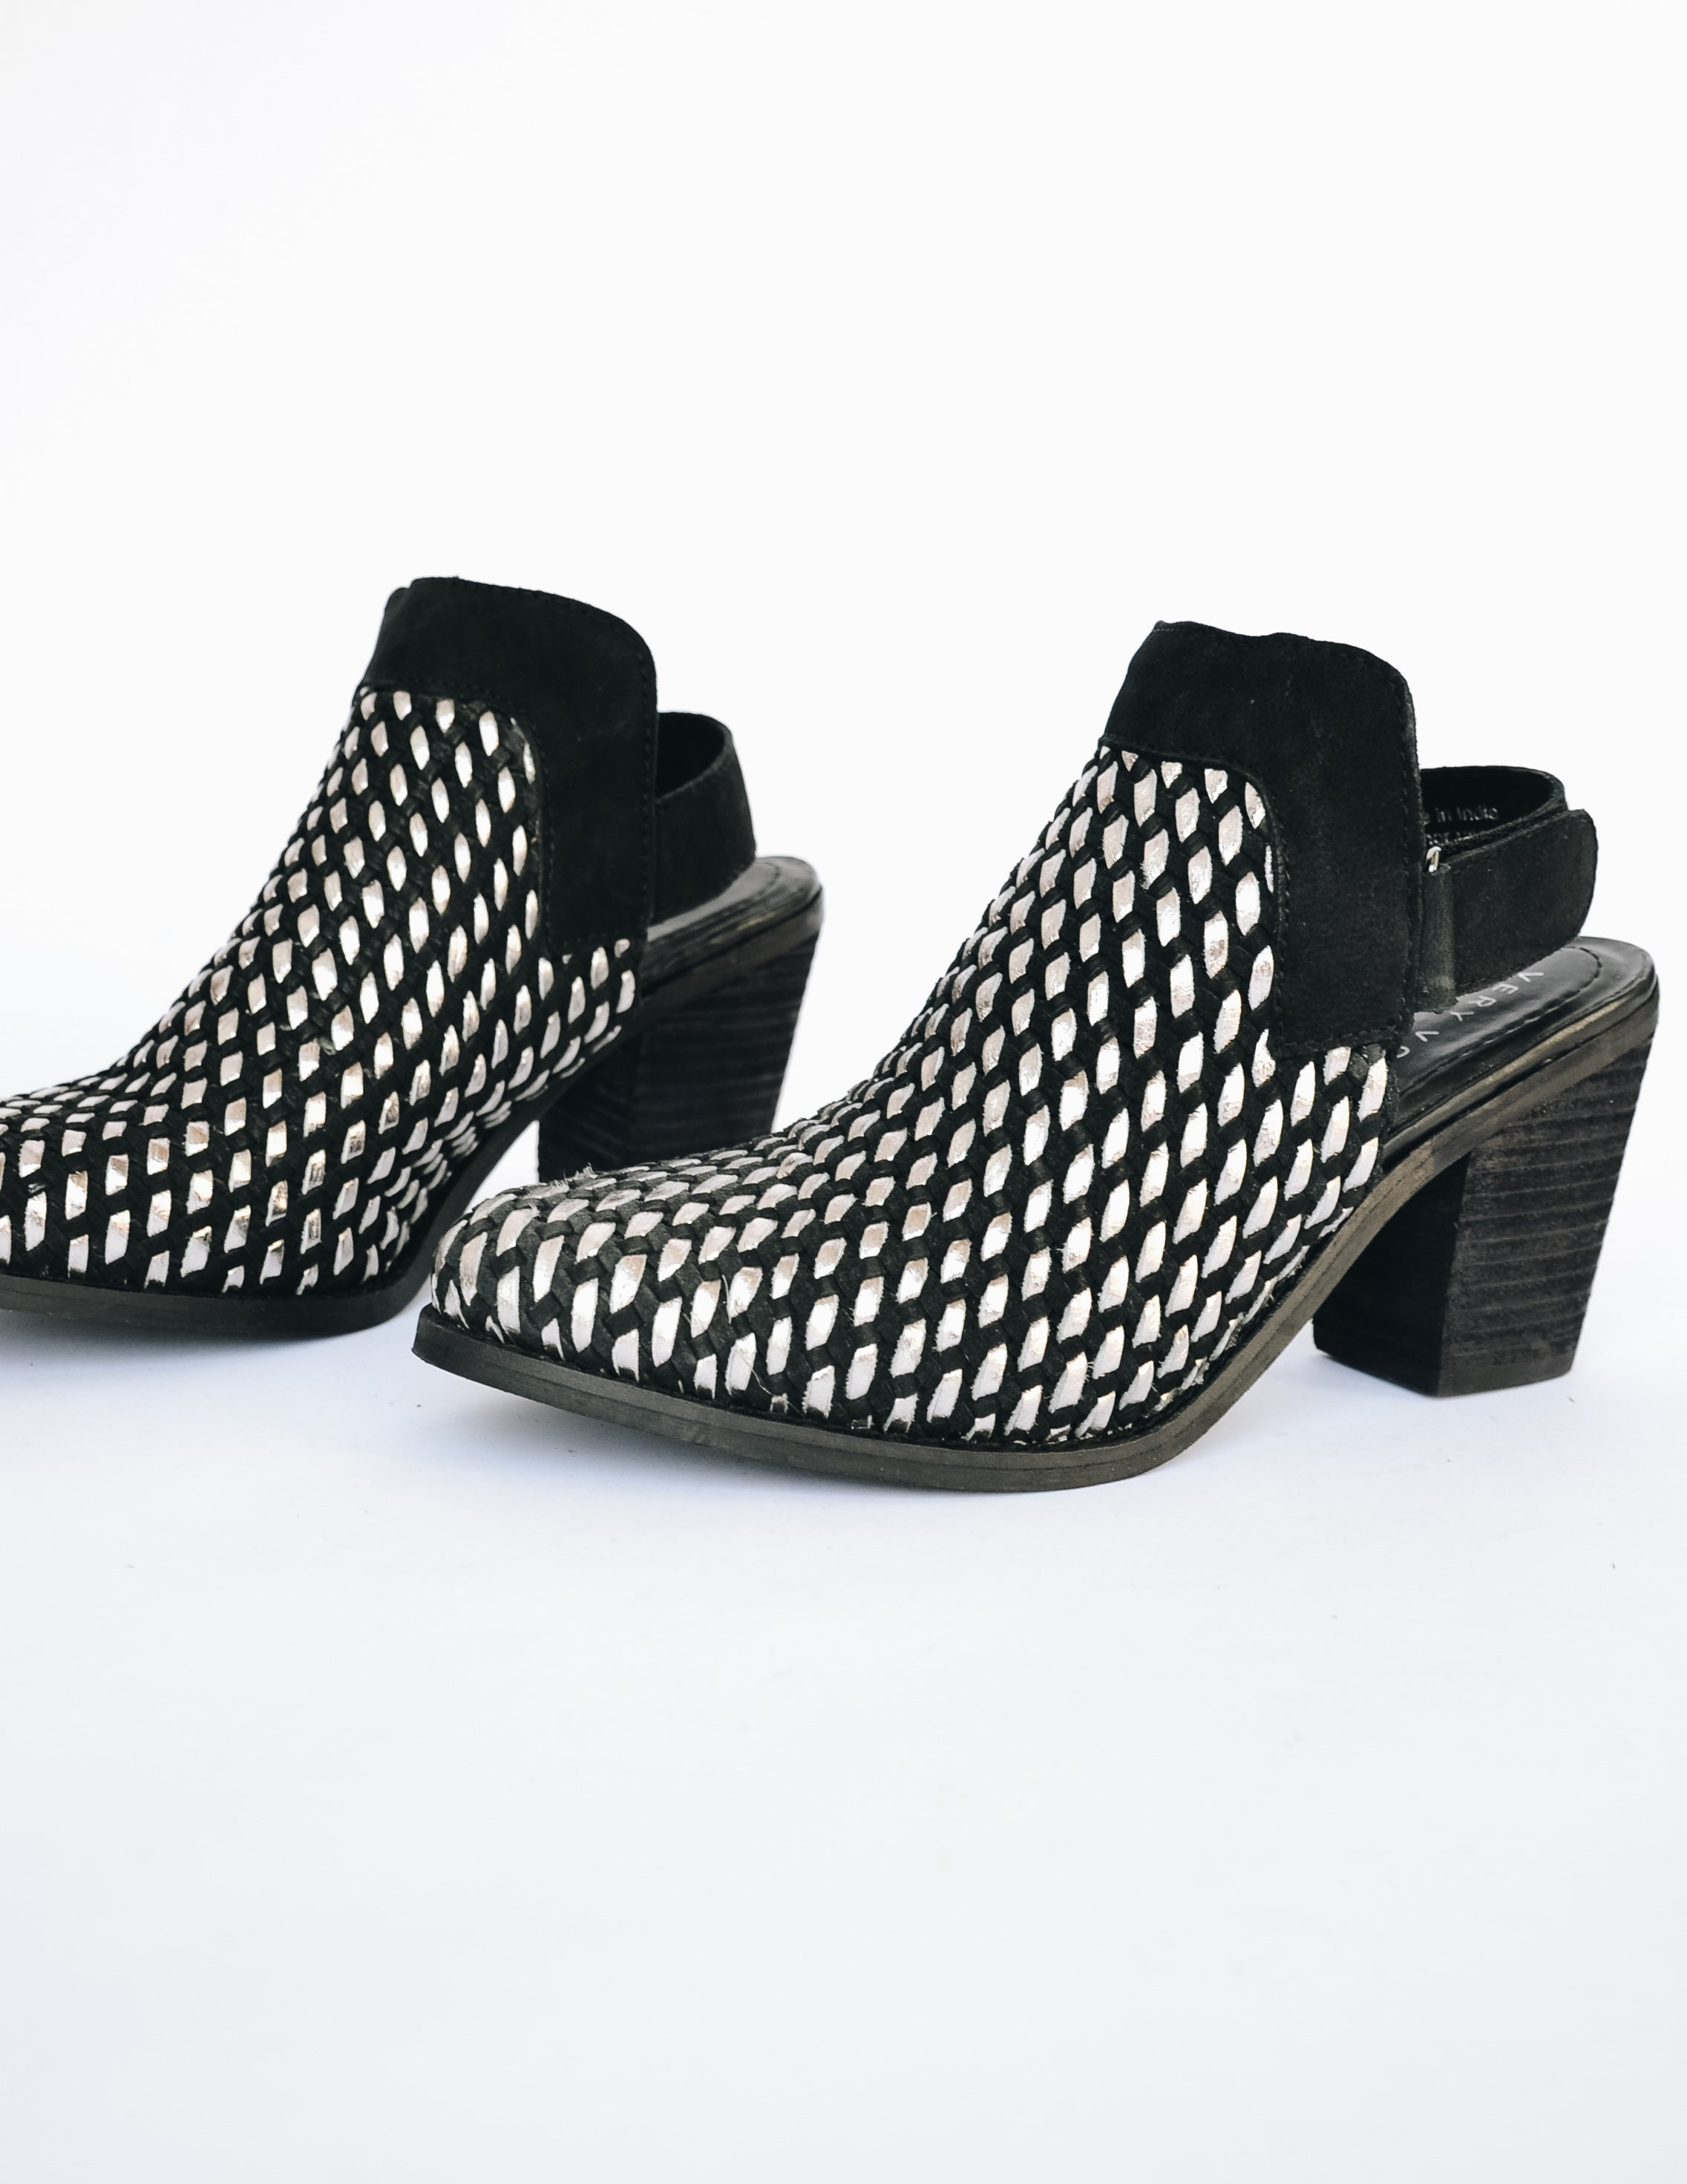 Front of Volatile Sandara heel with almond toe and silver and black woven upper